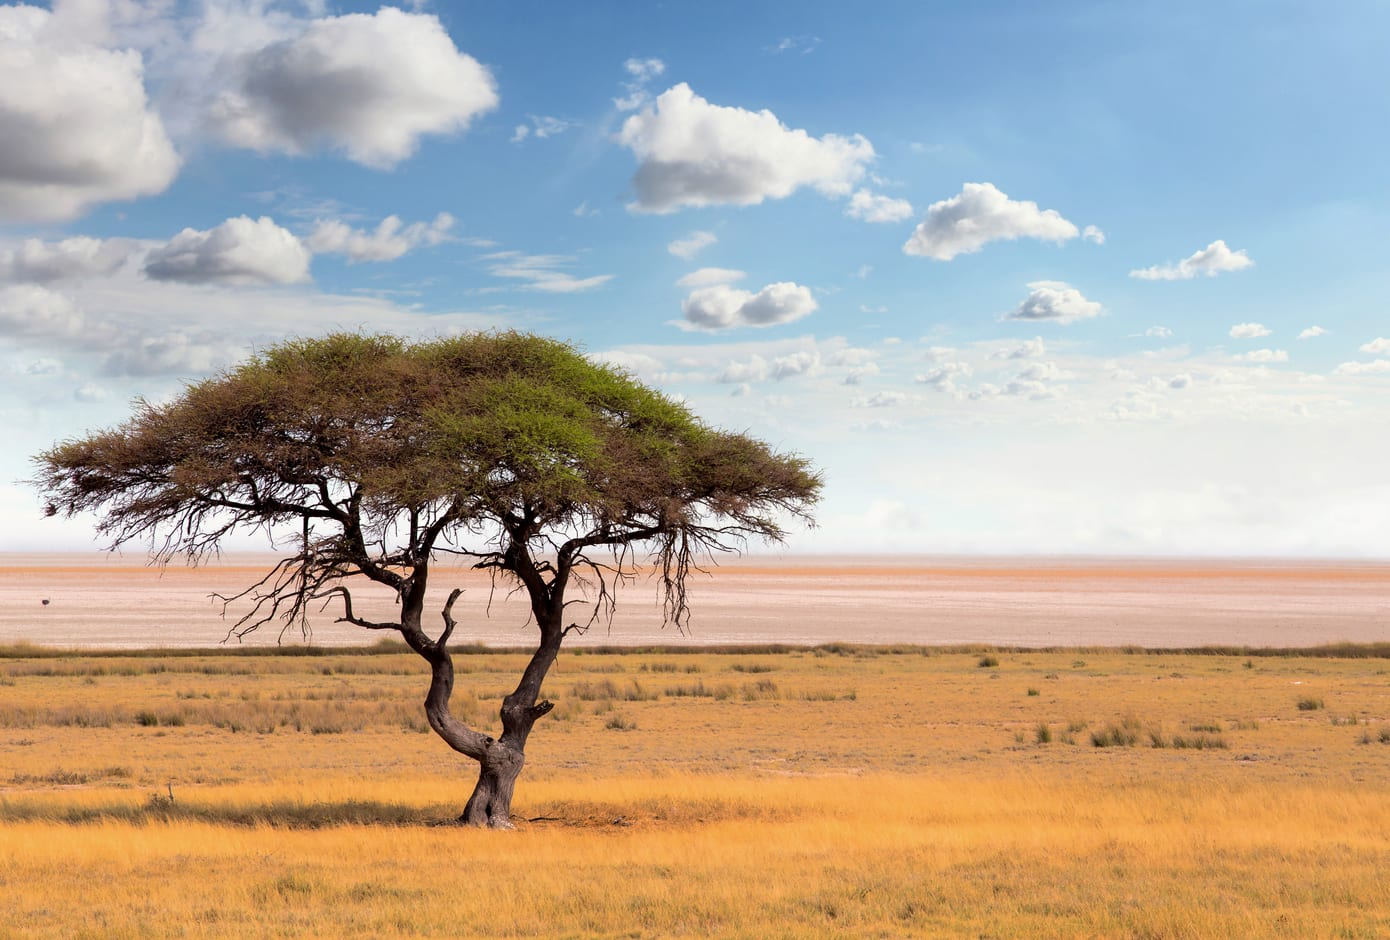 Acacia tree in Botswana, Africa.